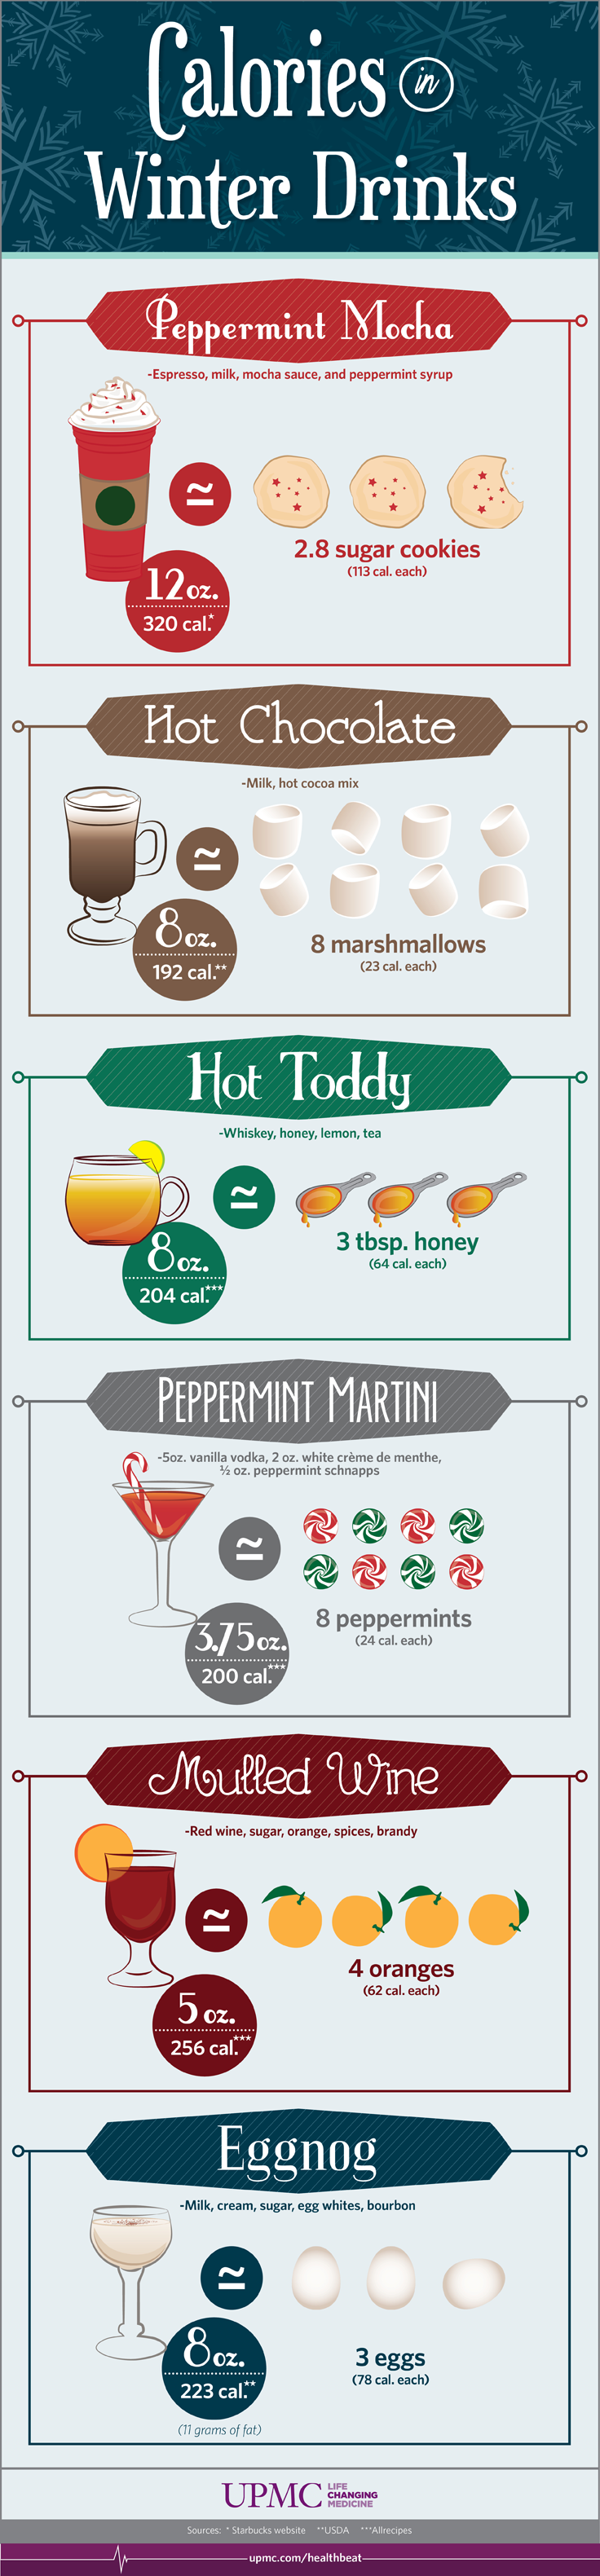 Discover the calories in your favorite winter drinks so you can make better decisions this holiday season.